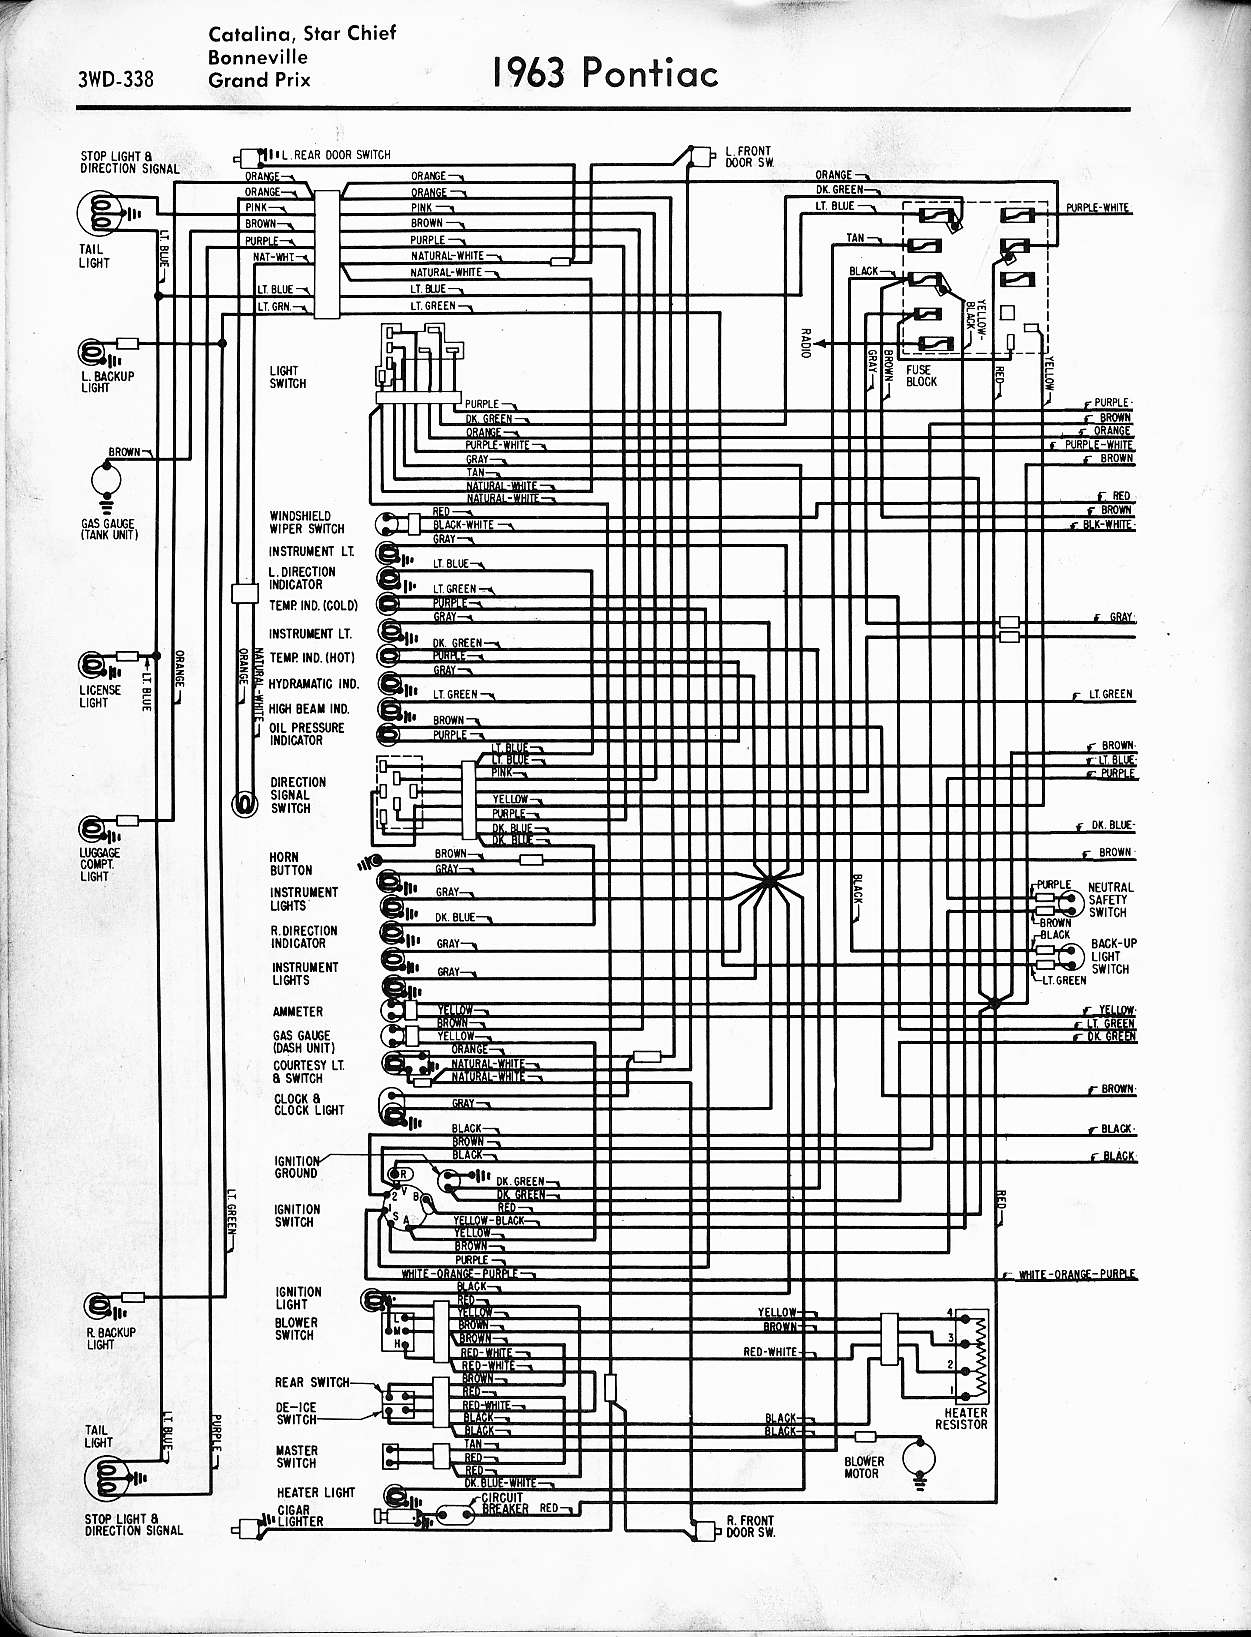 wiring diagram for pontiac bonneville wiring diagram